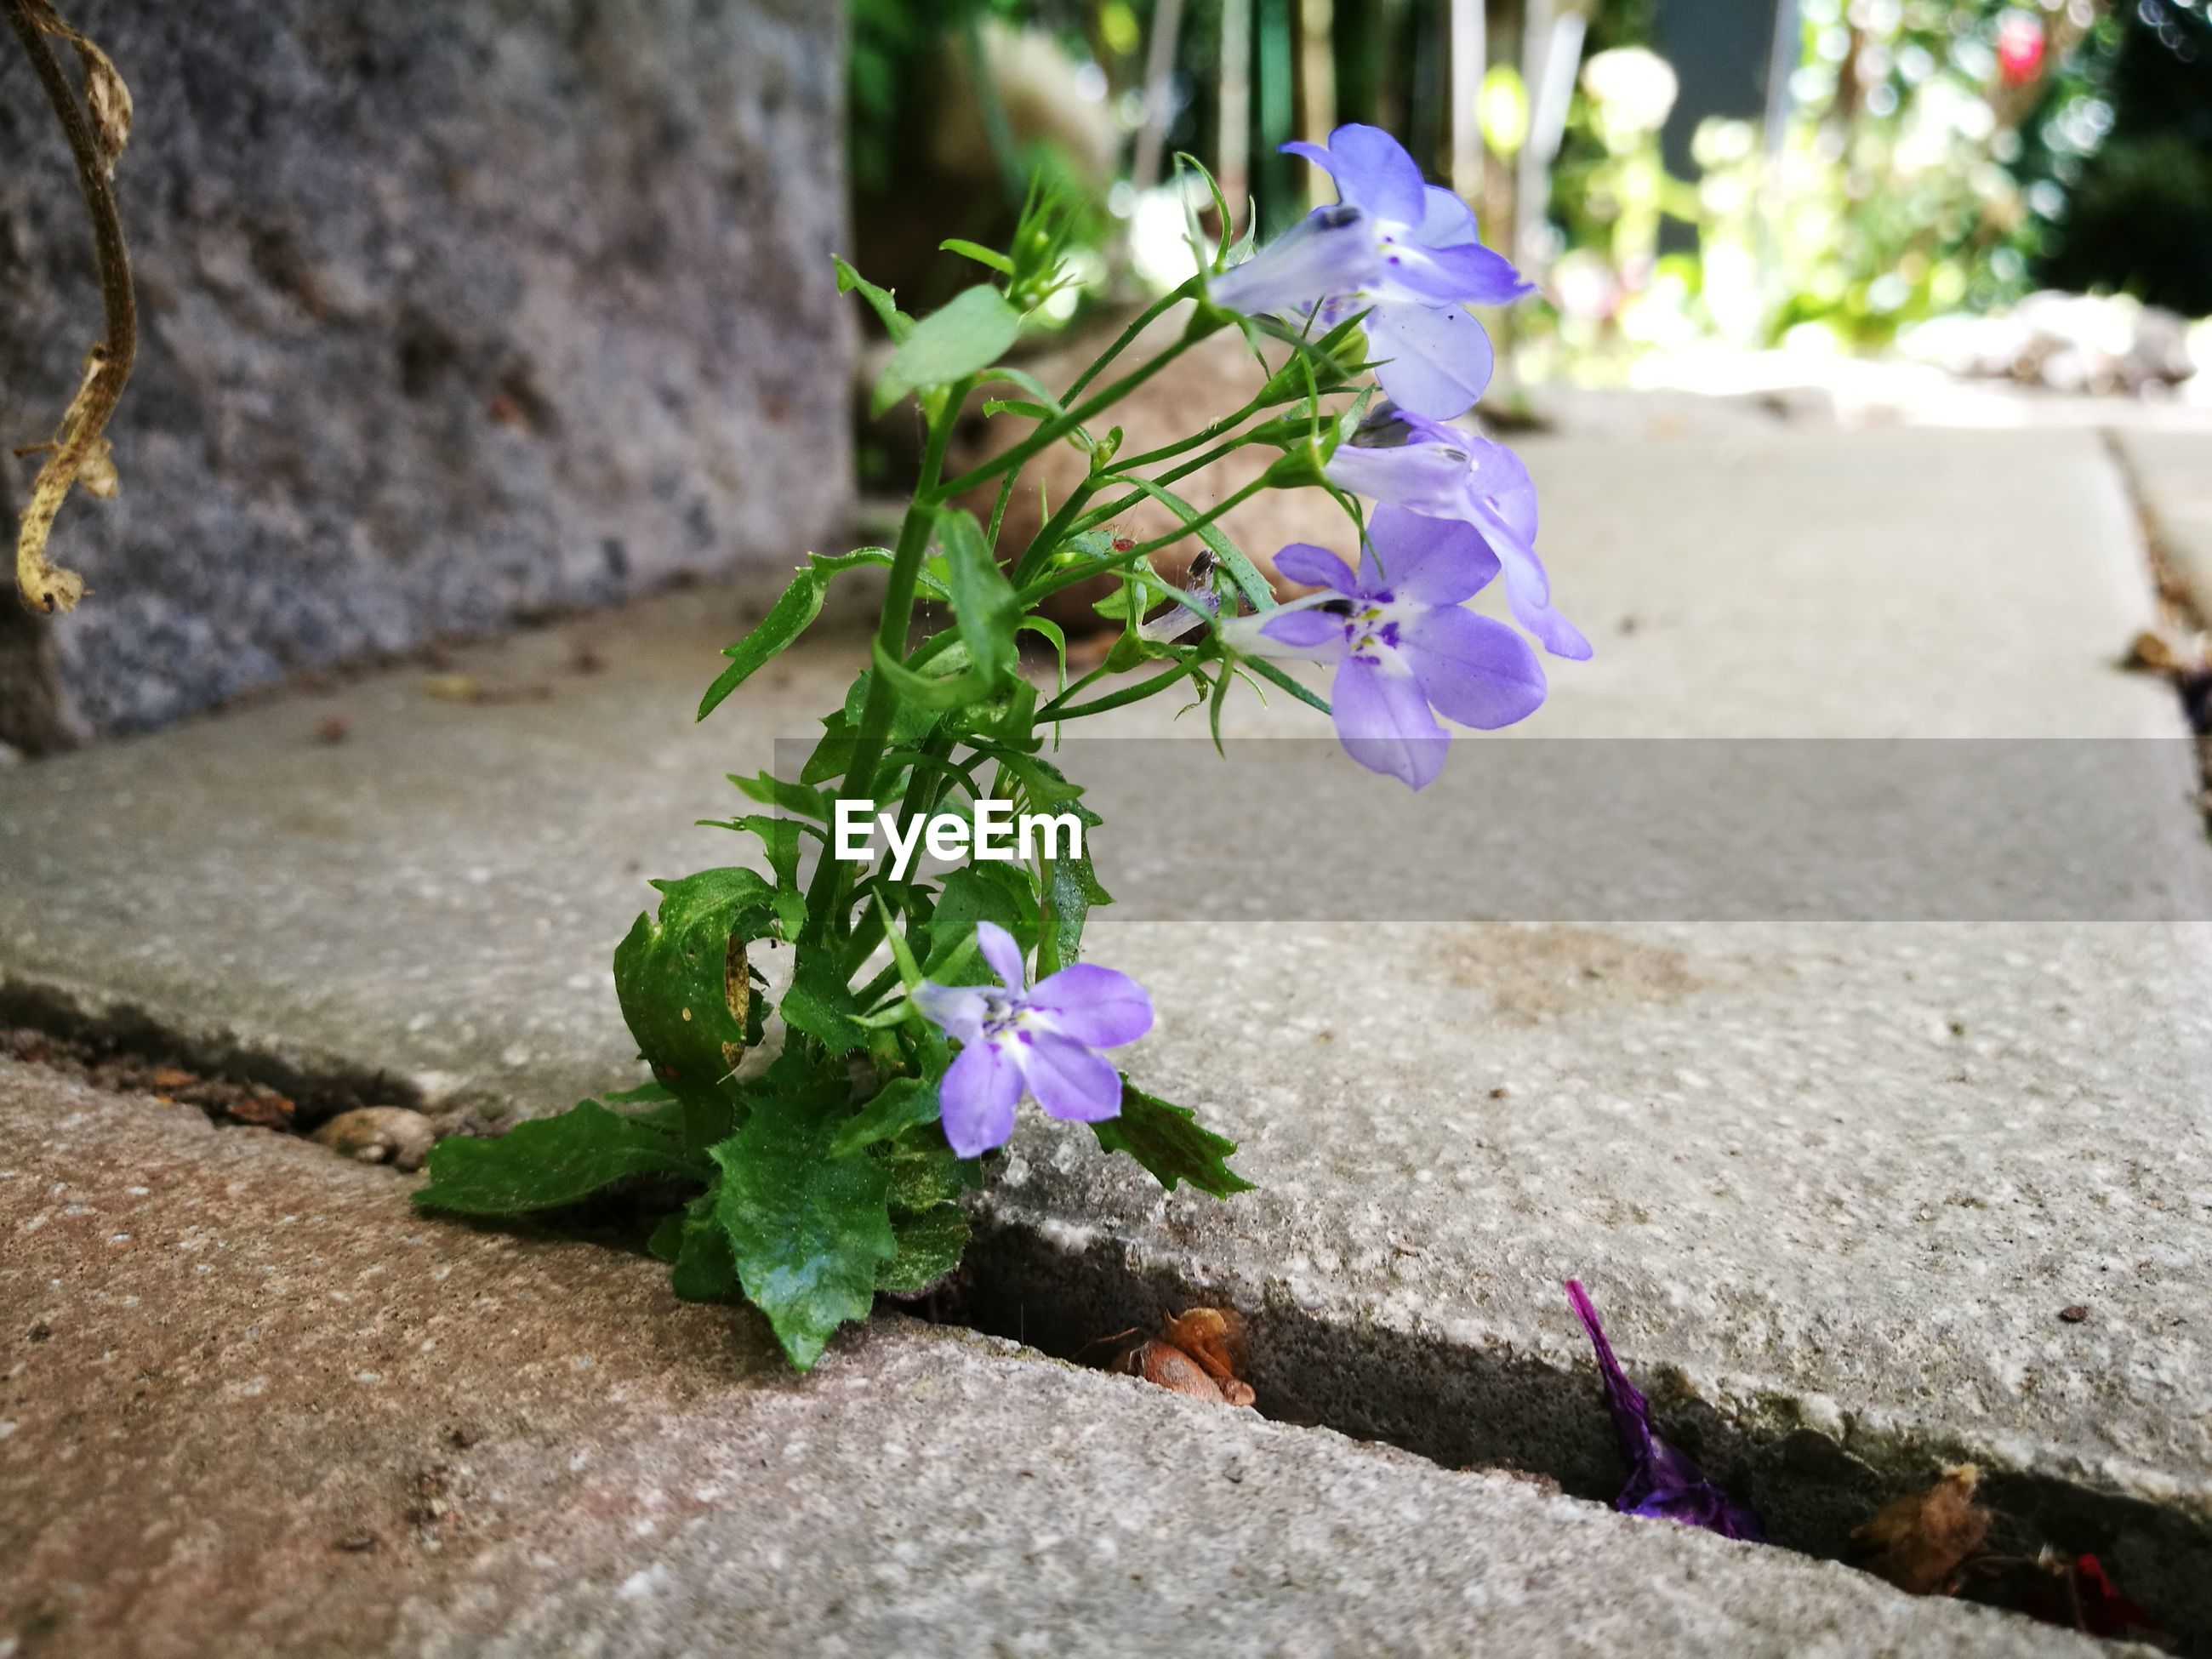 CLOSE-UP OF PURPLE FLOWERING PLANT IN CONCRETE